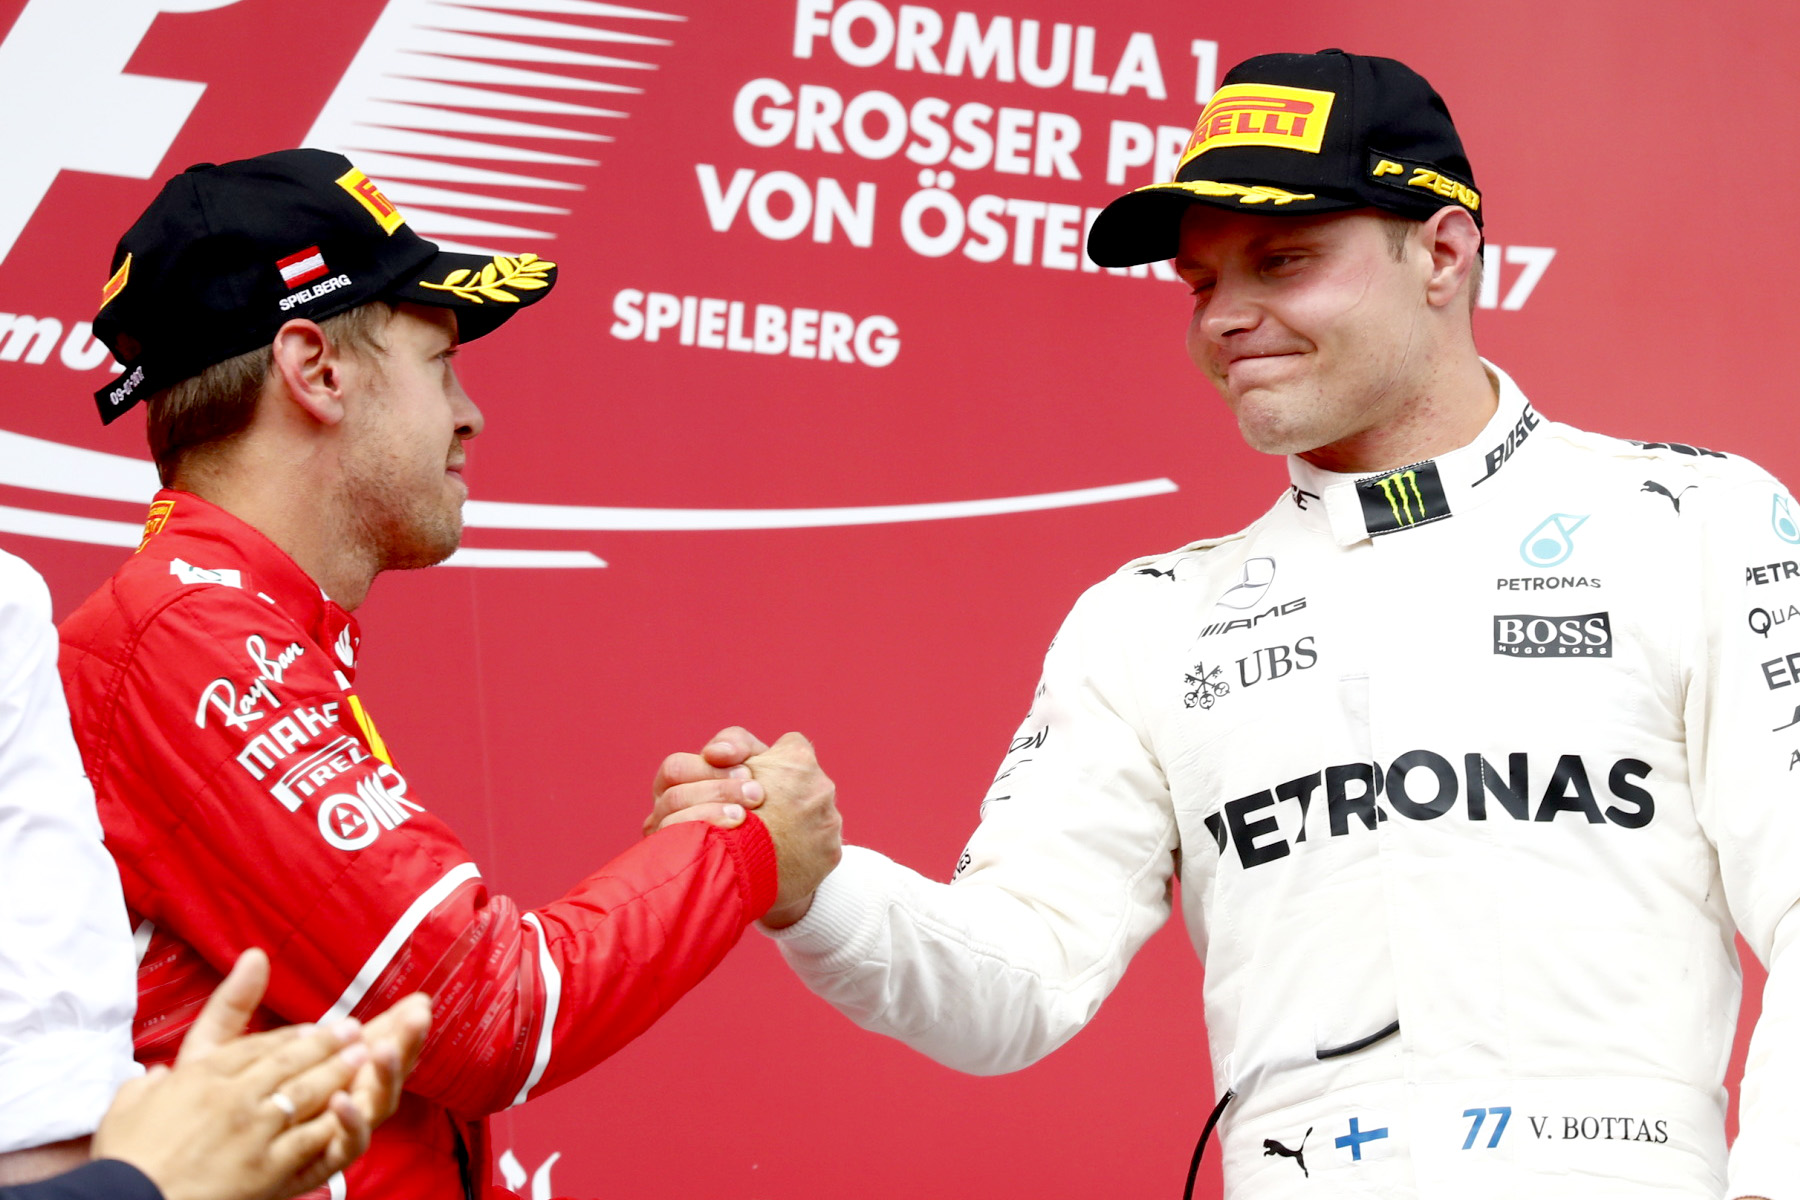 Valtteri Bottas shakes Sebastian Vettel's hand on the Austrian Grand Prix podium.